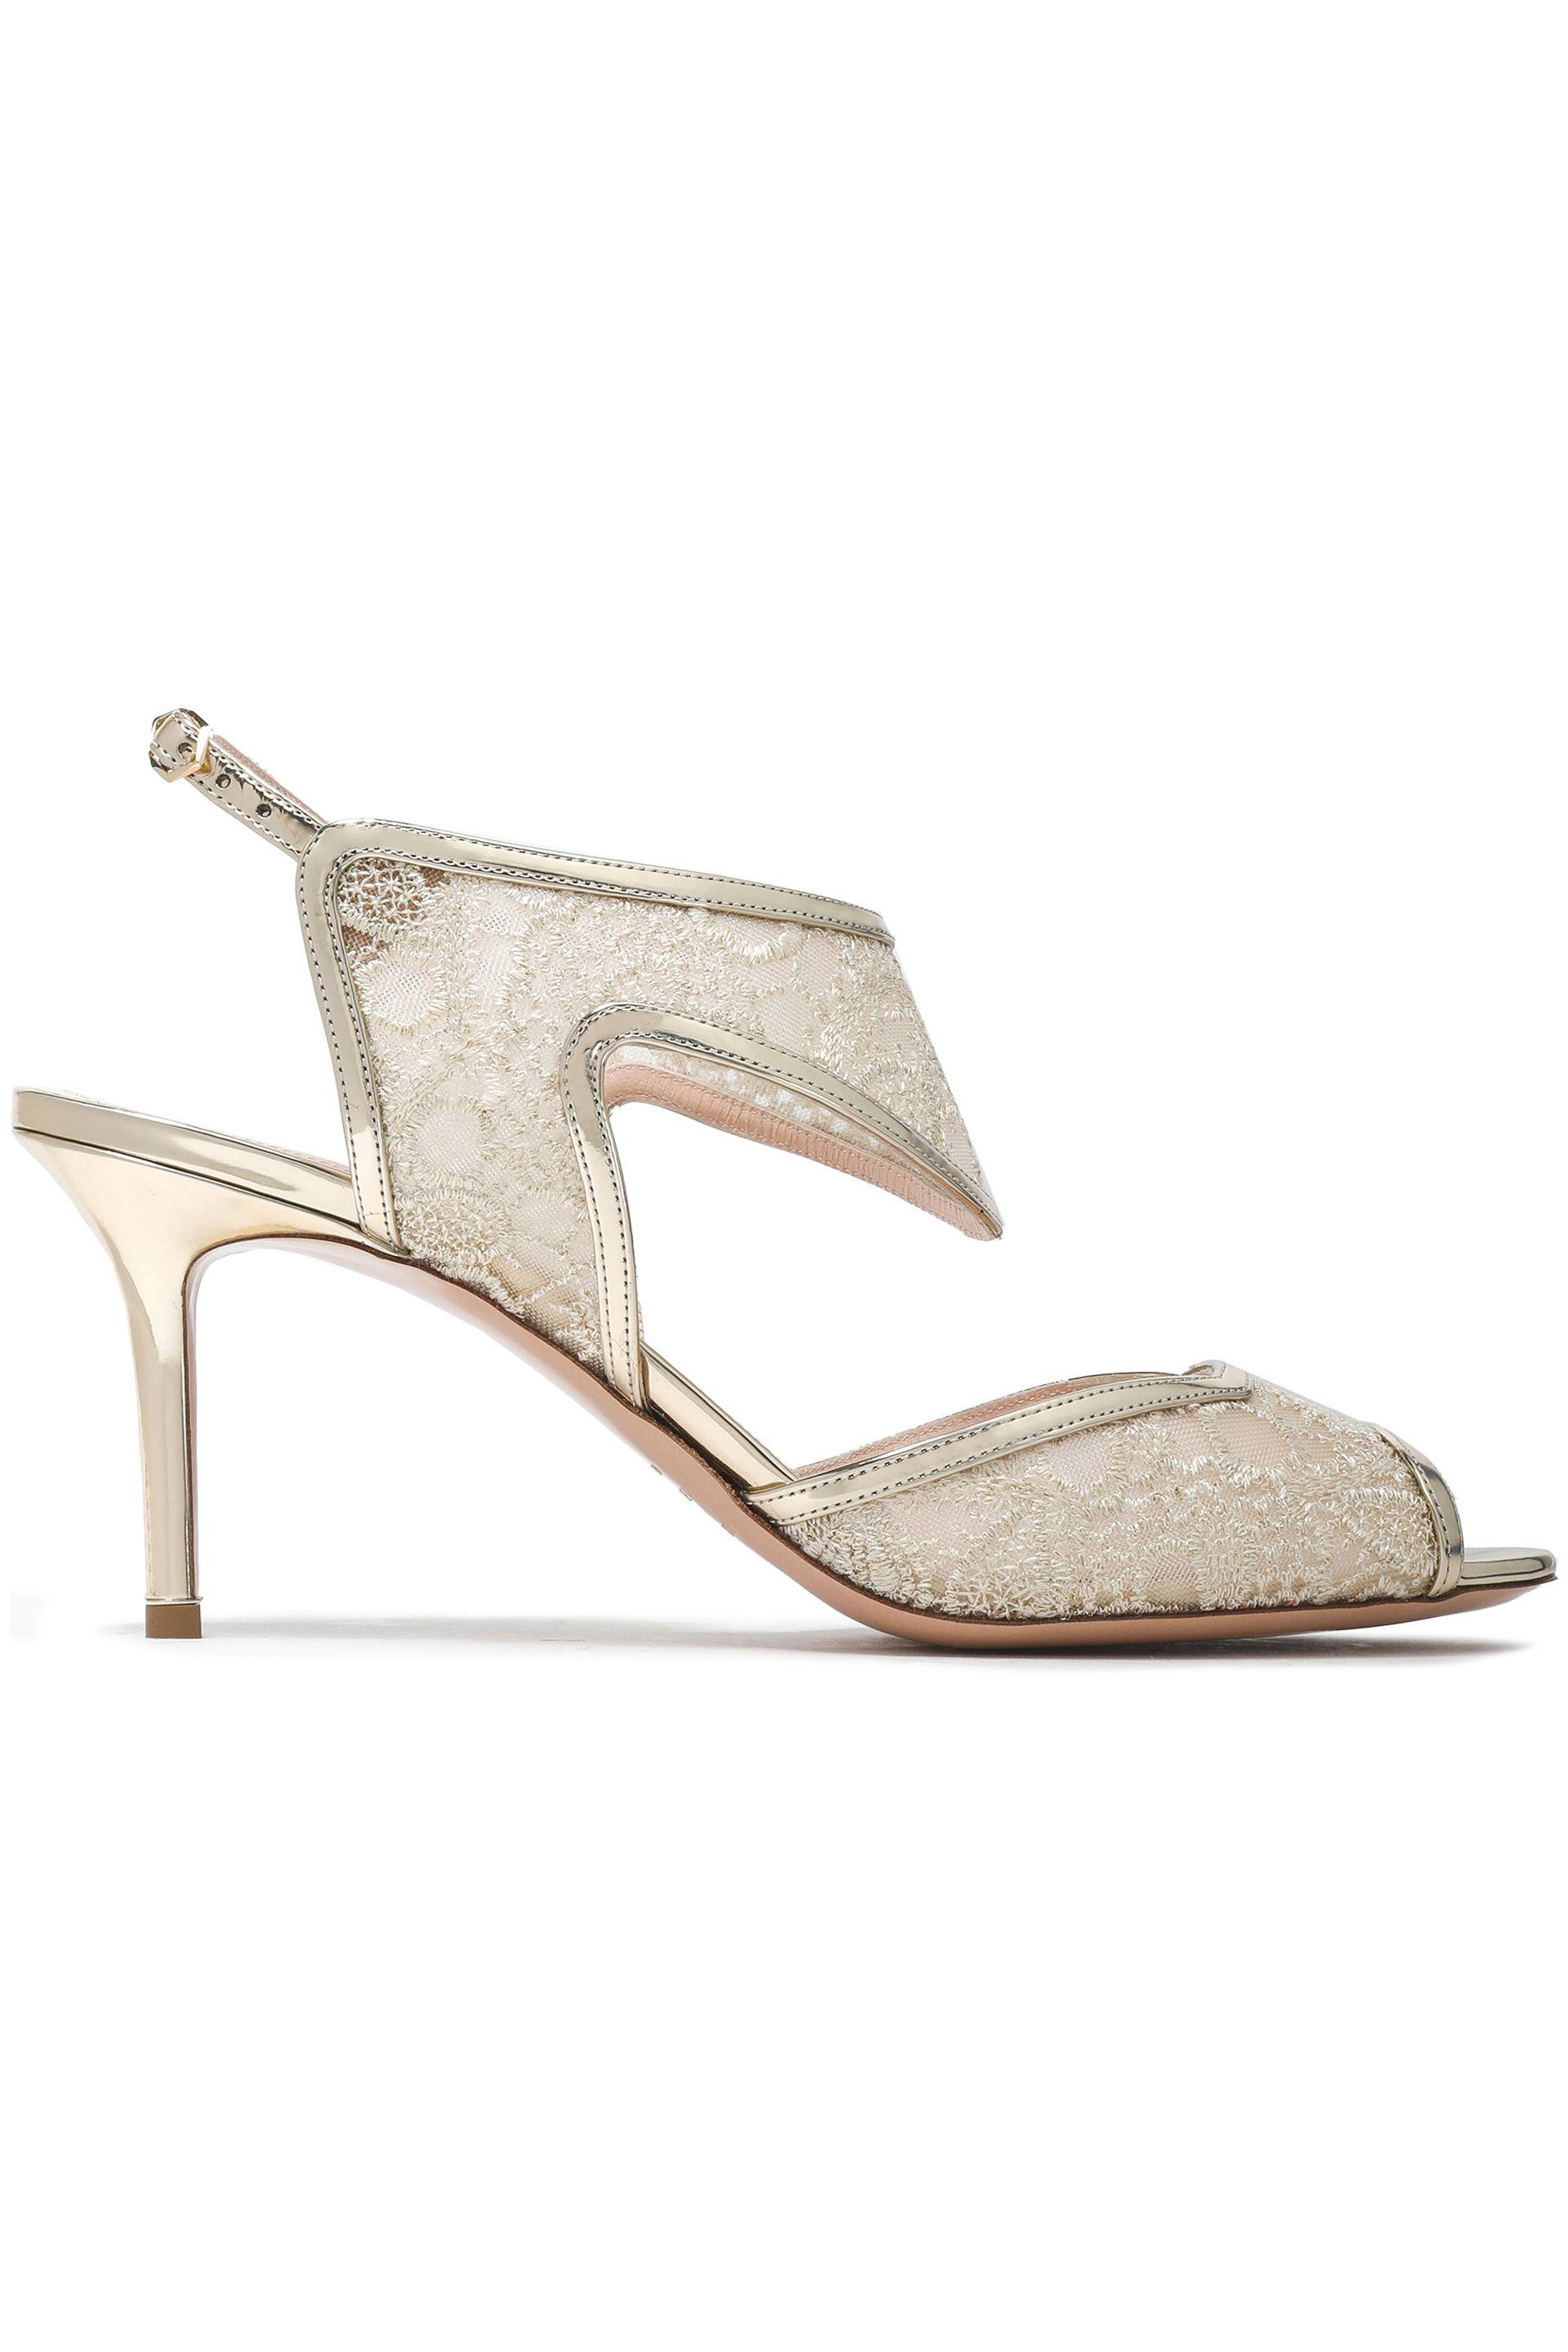 dcf18eb9d27 Nicholas Kirkwood. Women s Metallic Leather-trimmed Embroidered Mesh Sandals